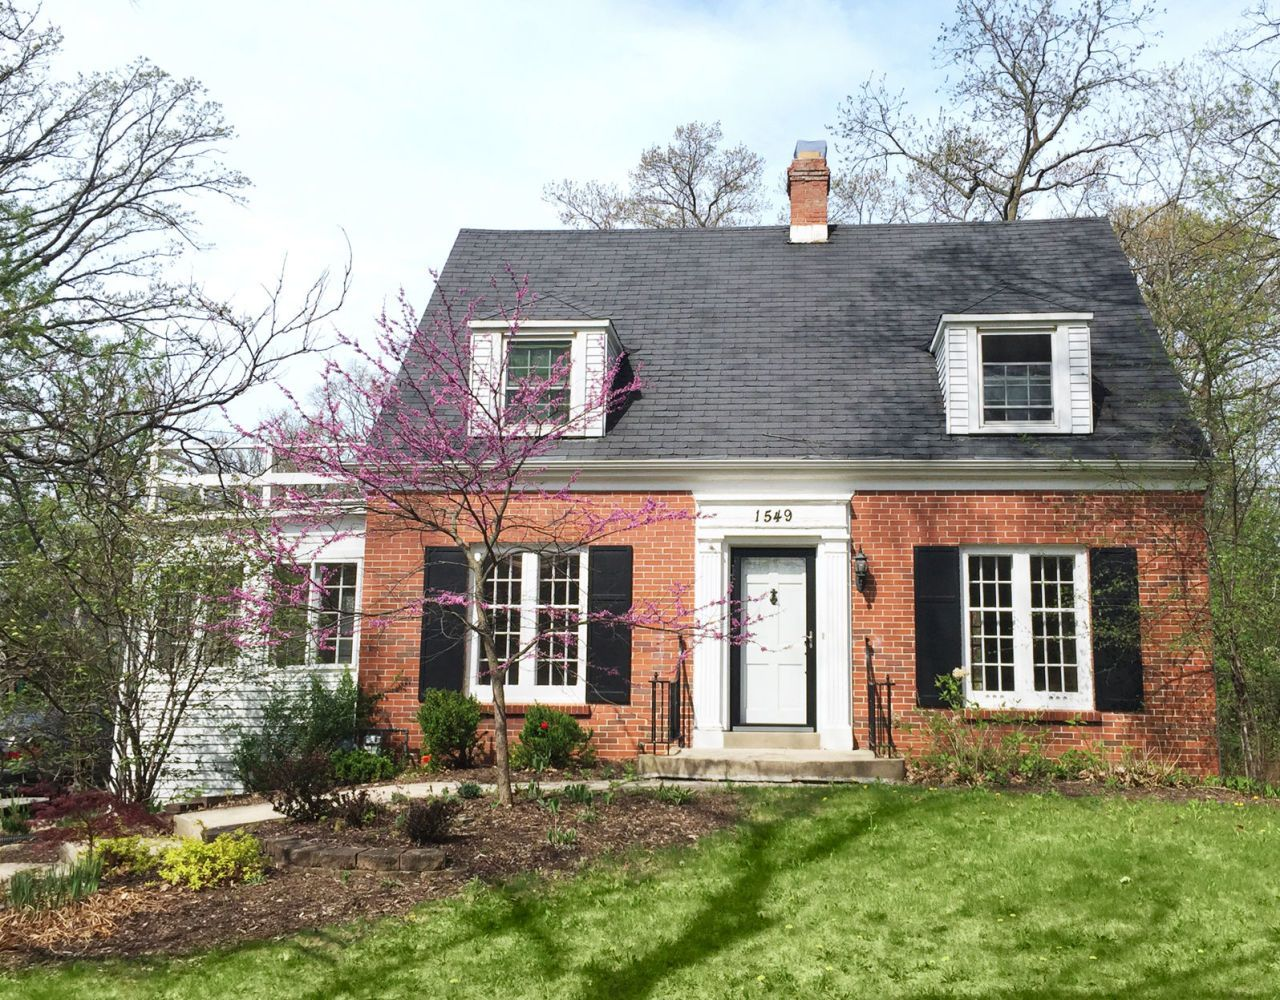 Medium Of Cape Cod Homes For Sale